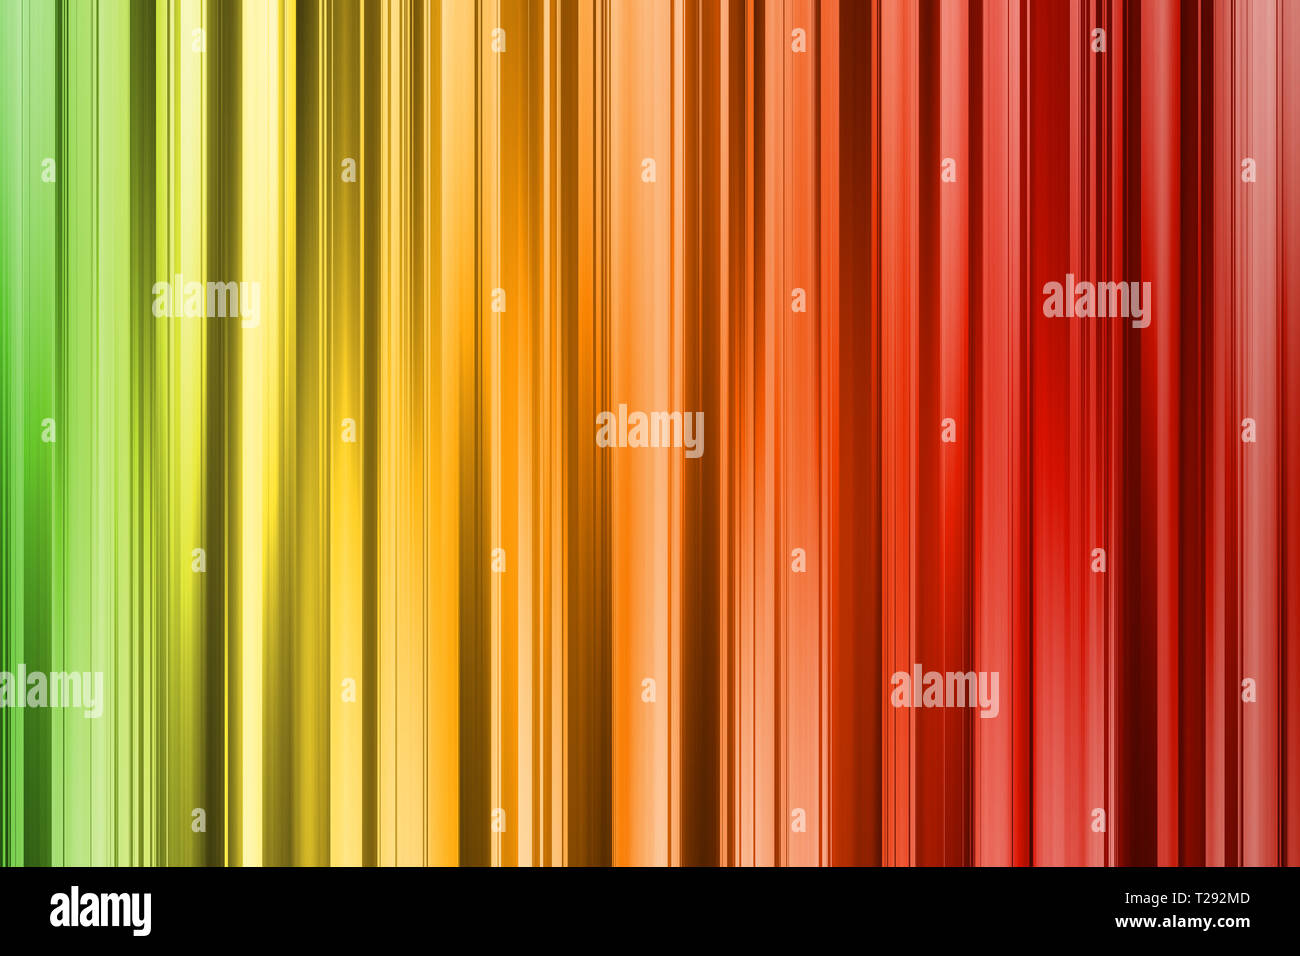 Green Yellow Orange Red Lines Dark And Light Abstract